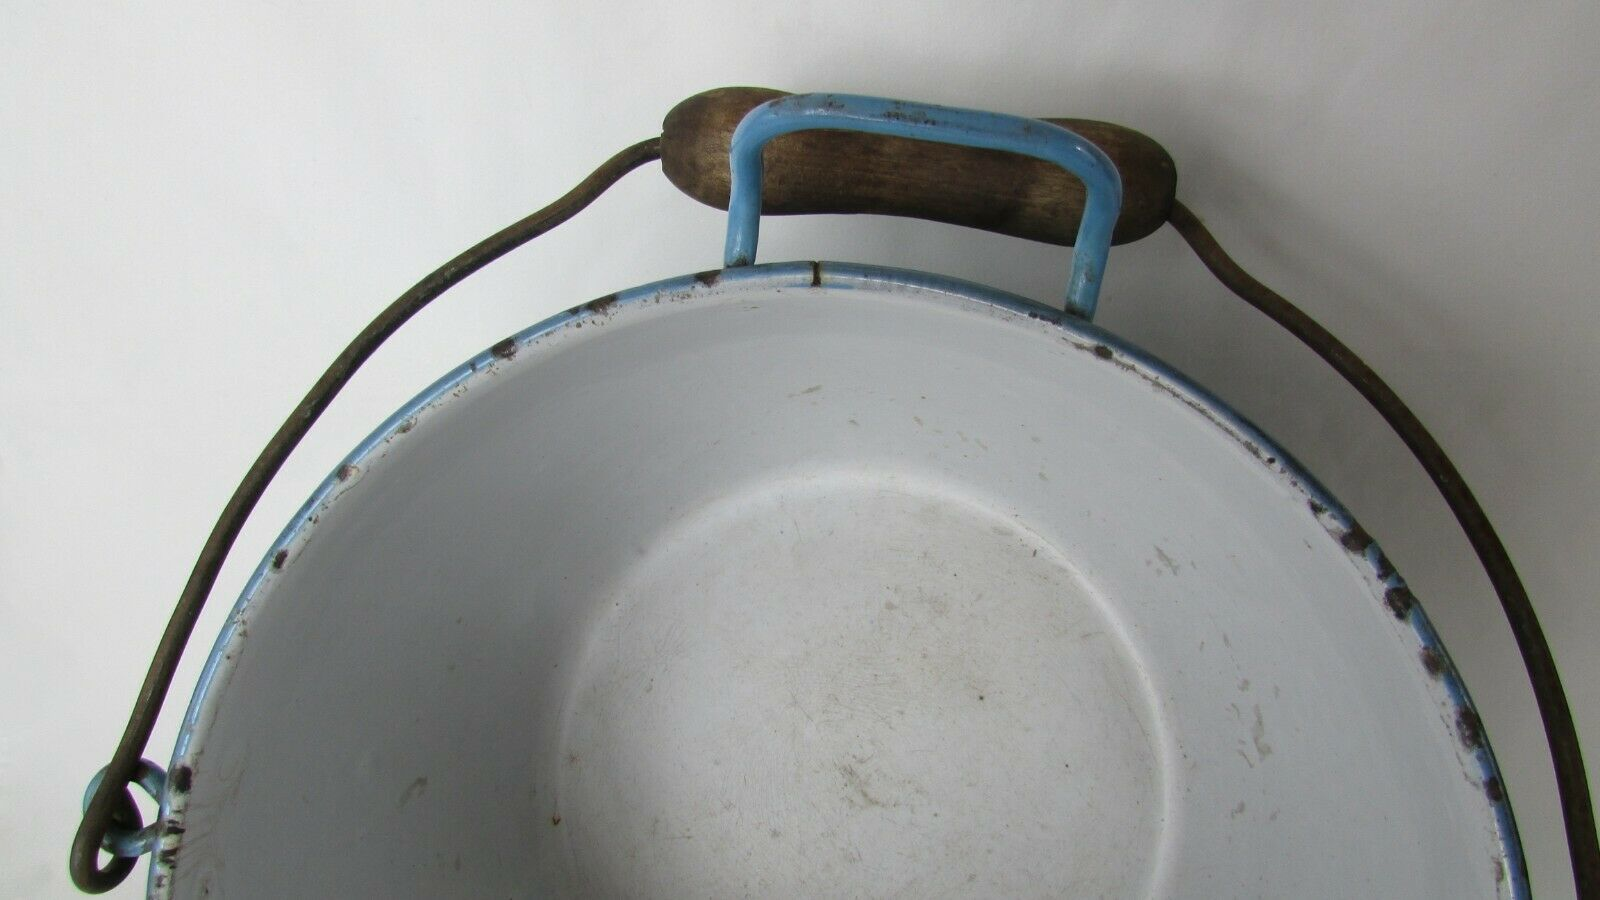 Vintage Enamel  Pail Bucket Blue and White Enamelware With Wooden Handle image 5